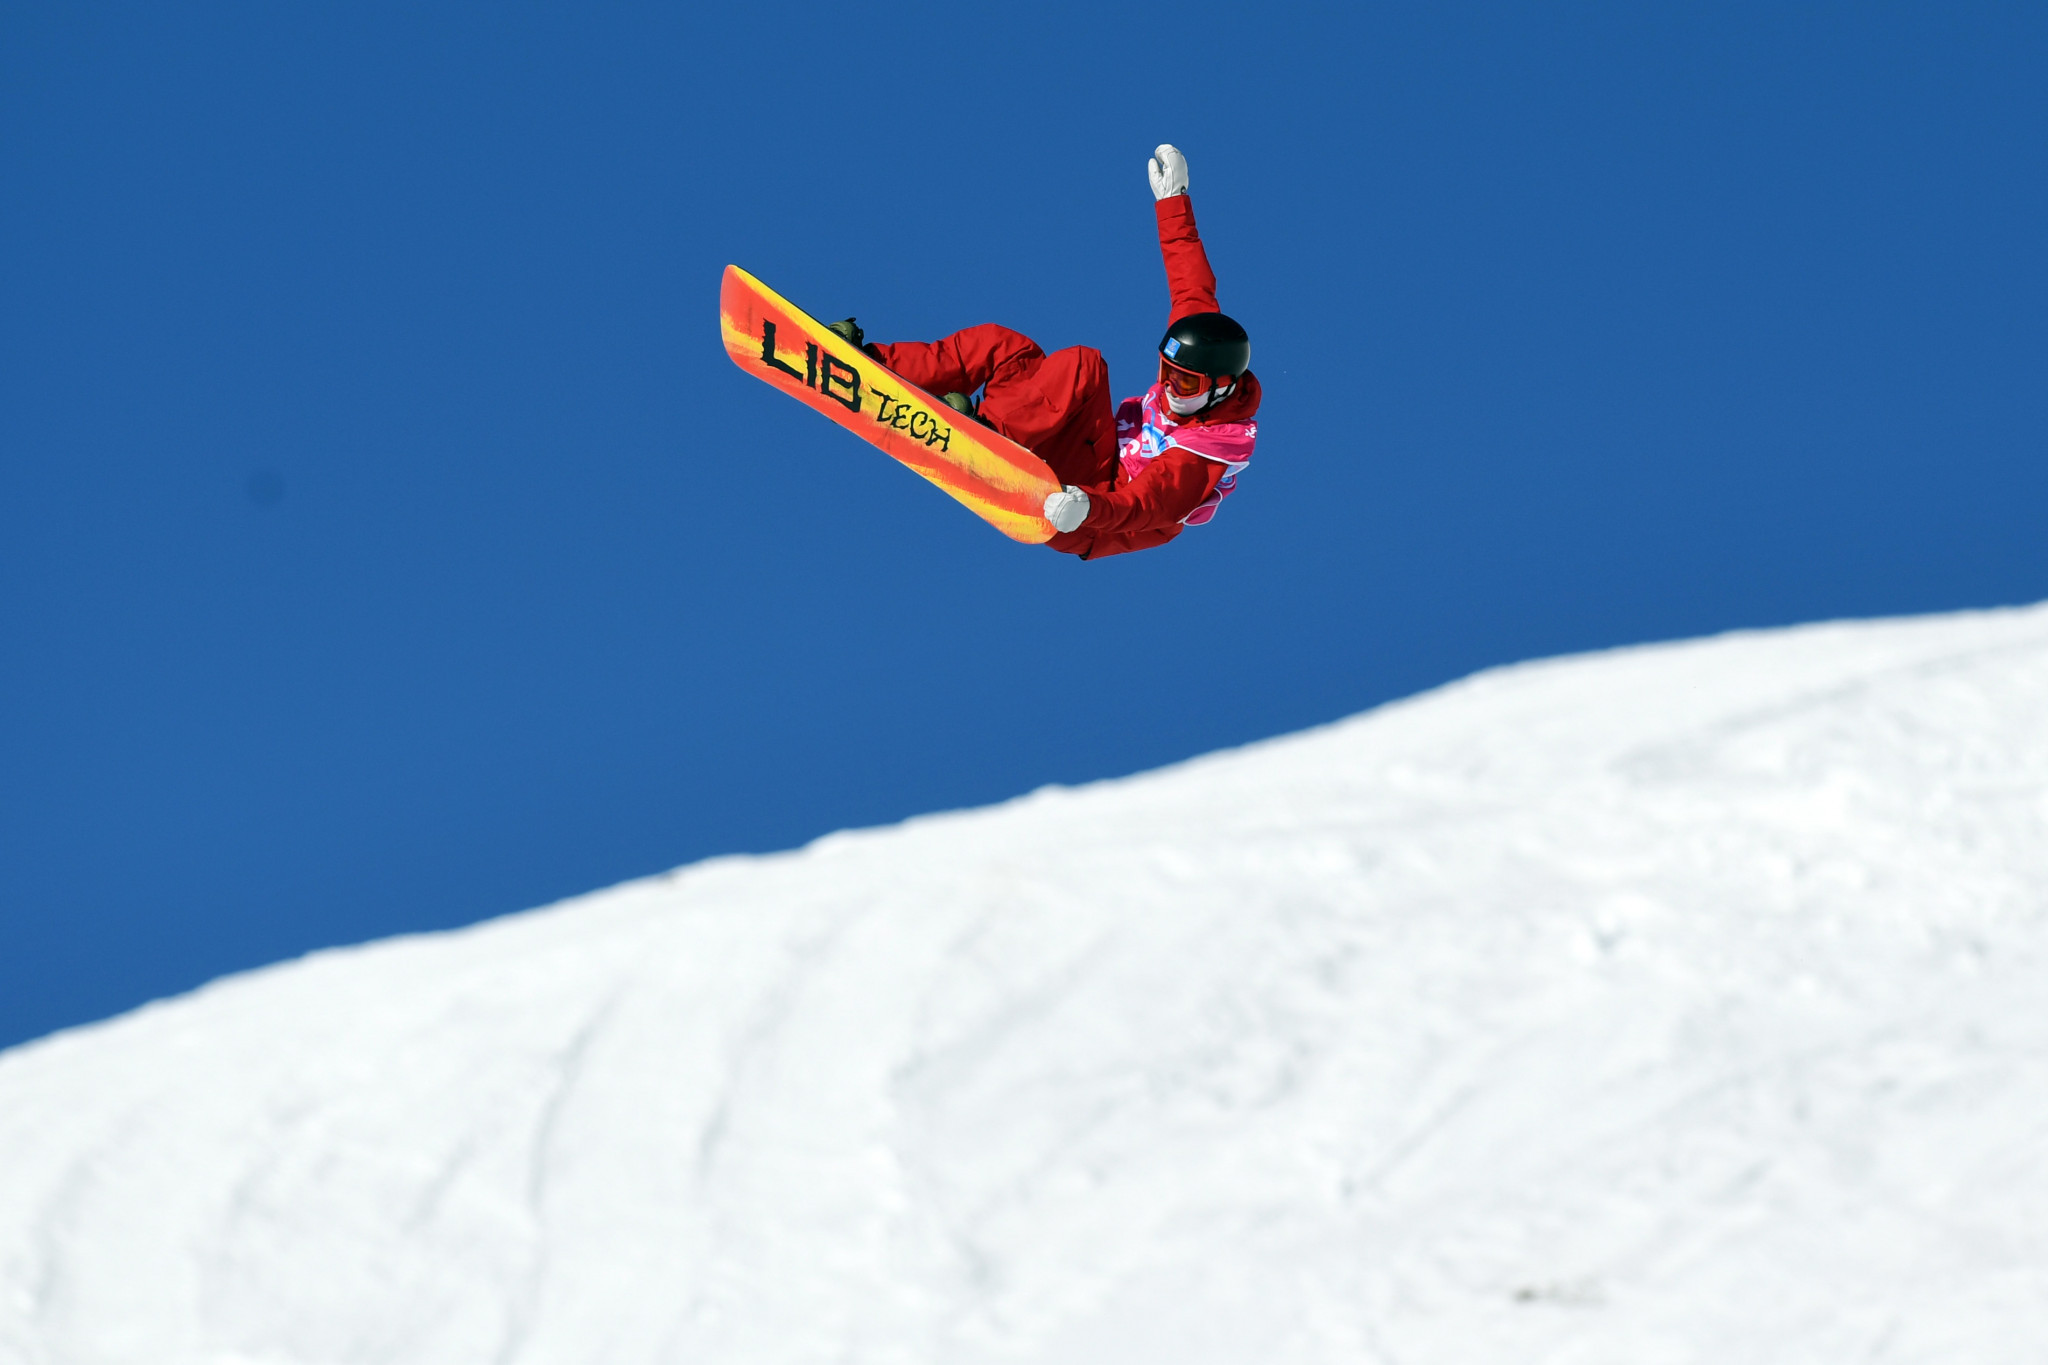 Corvatsch steps in to host season-ending slopestyle Snowboard World Cup